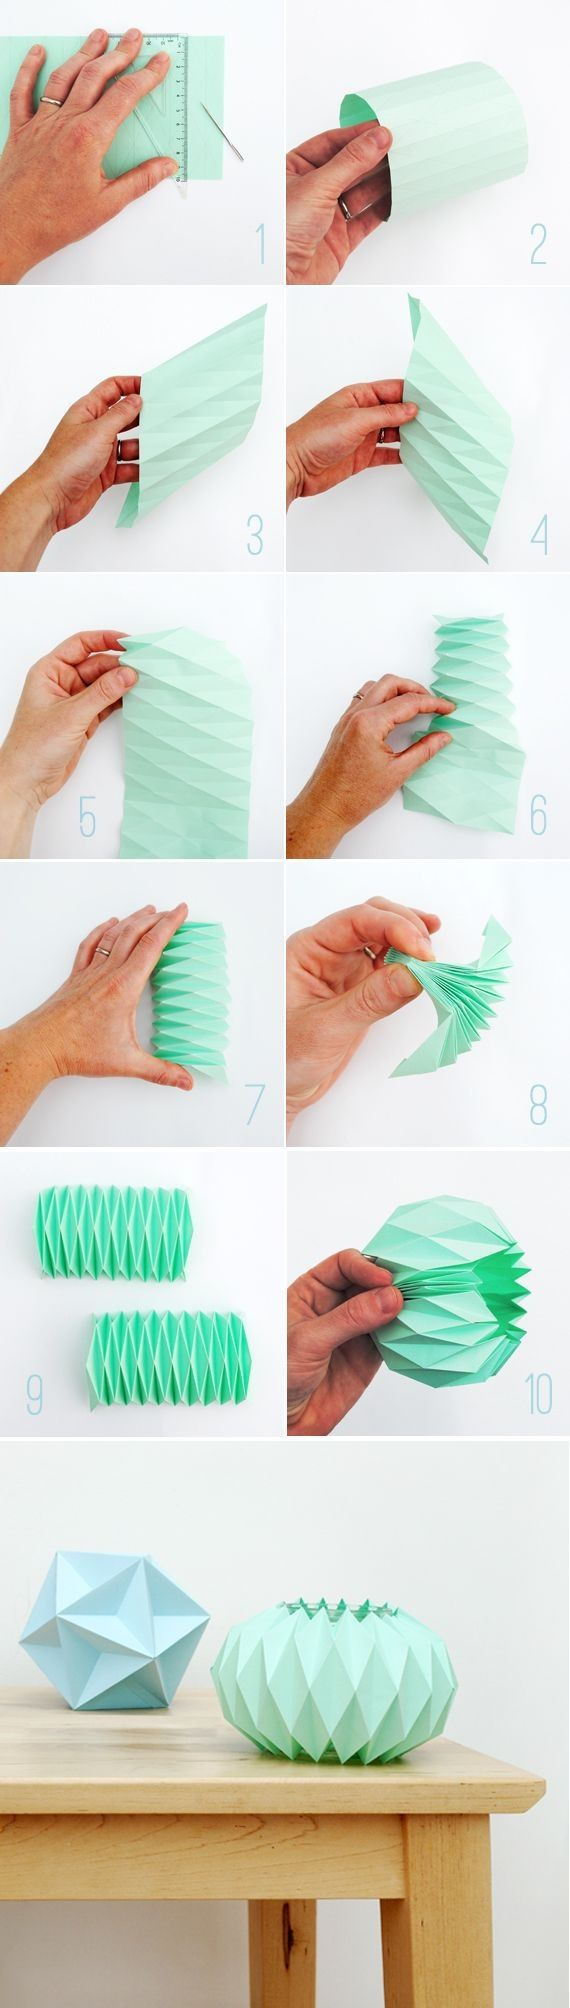 origami lampshade http://www.unitednow.com/search.aspx?searchterm=origami もっと見る